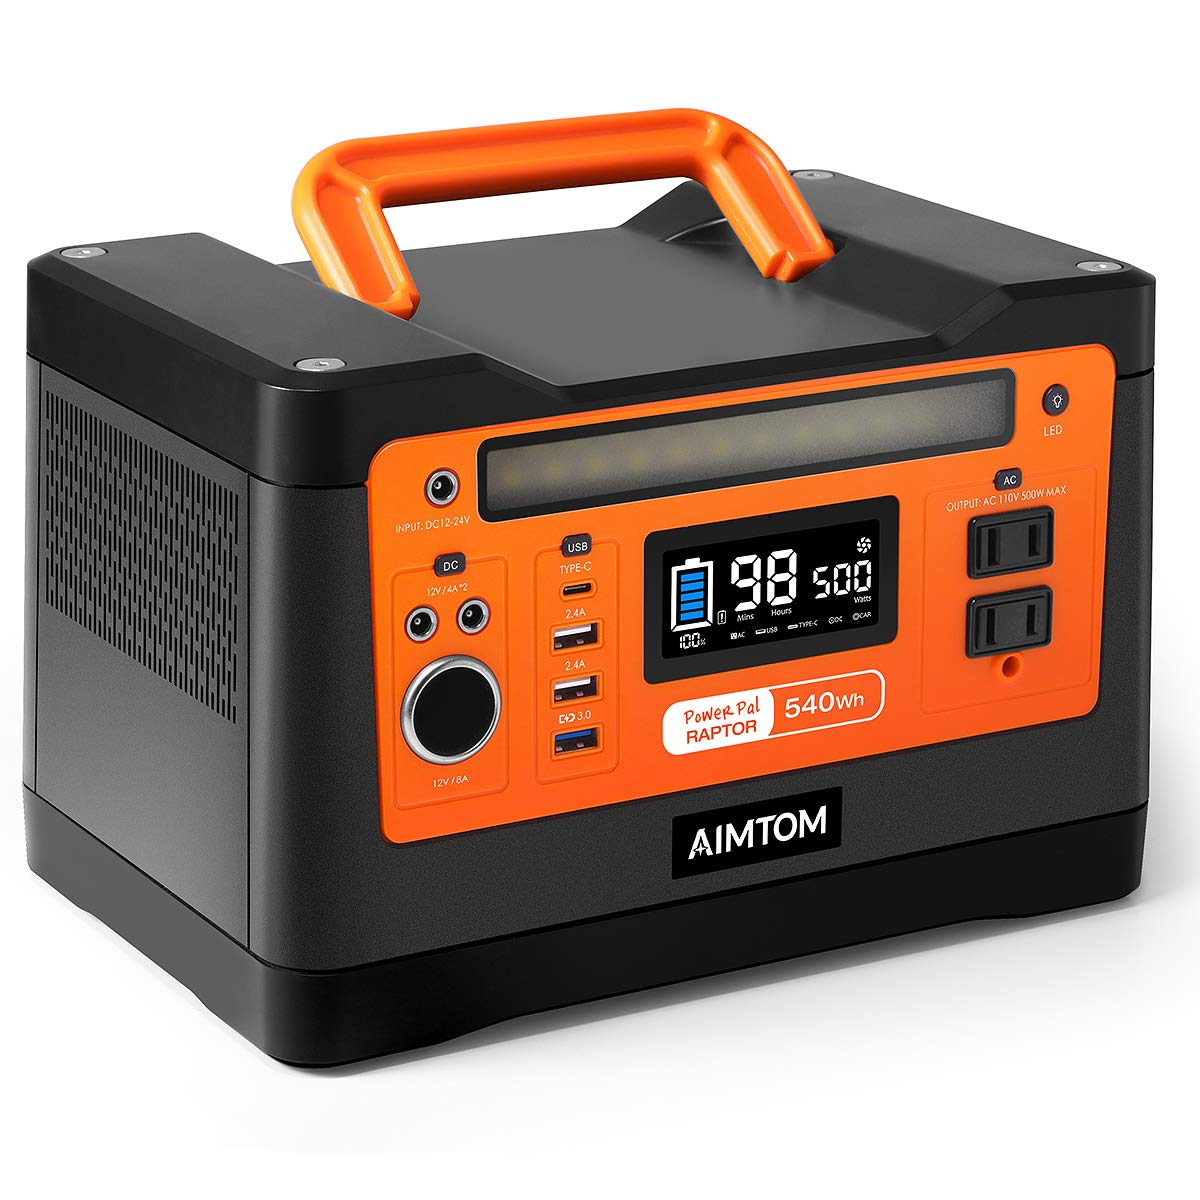 AIMTOM 540Wh Portable Power Station, Lithium Battery Pack with 110V/500W AC, 12V DC, USB, Carport, USB-C, Solar-Ready Generator Alternative (Solar Panel Optional) for Outdoor RV Camping Emergency